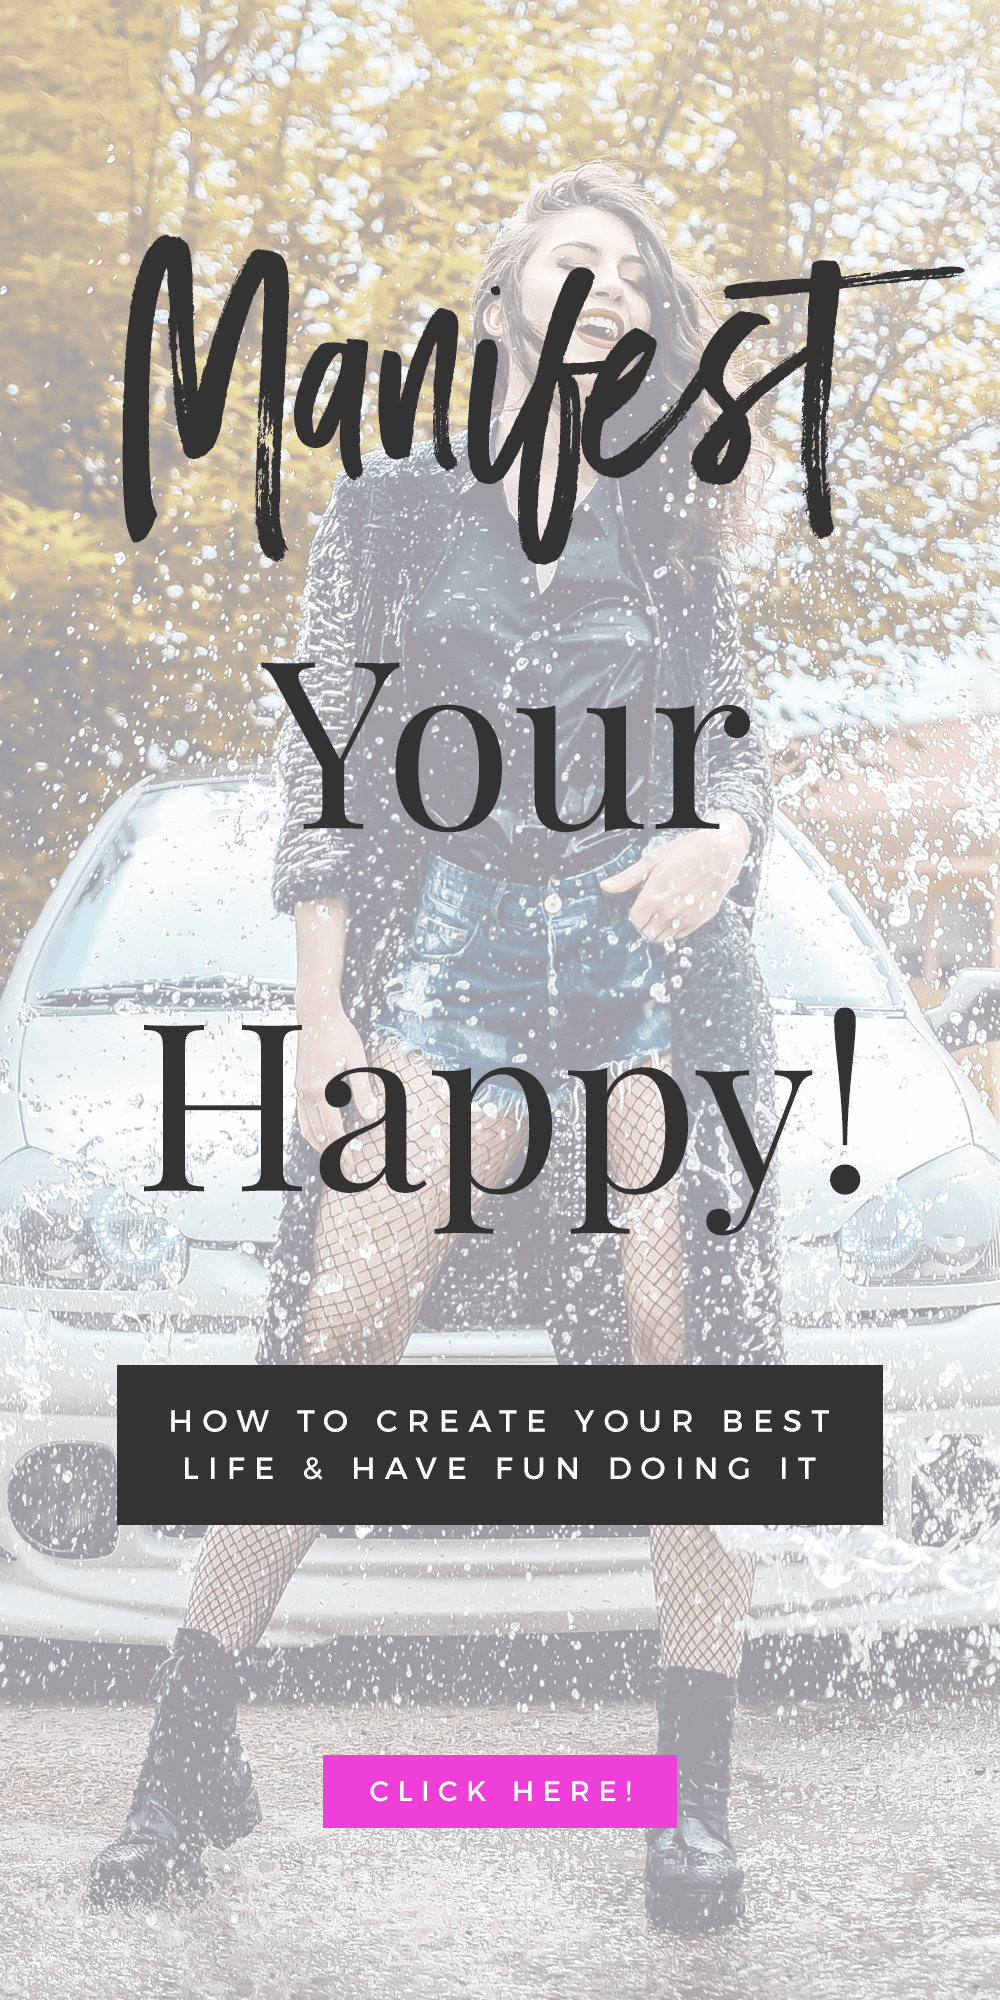 Manifest Your Happy! How To Create Your Best Life & Have Fun Doing It